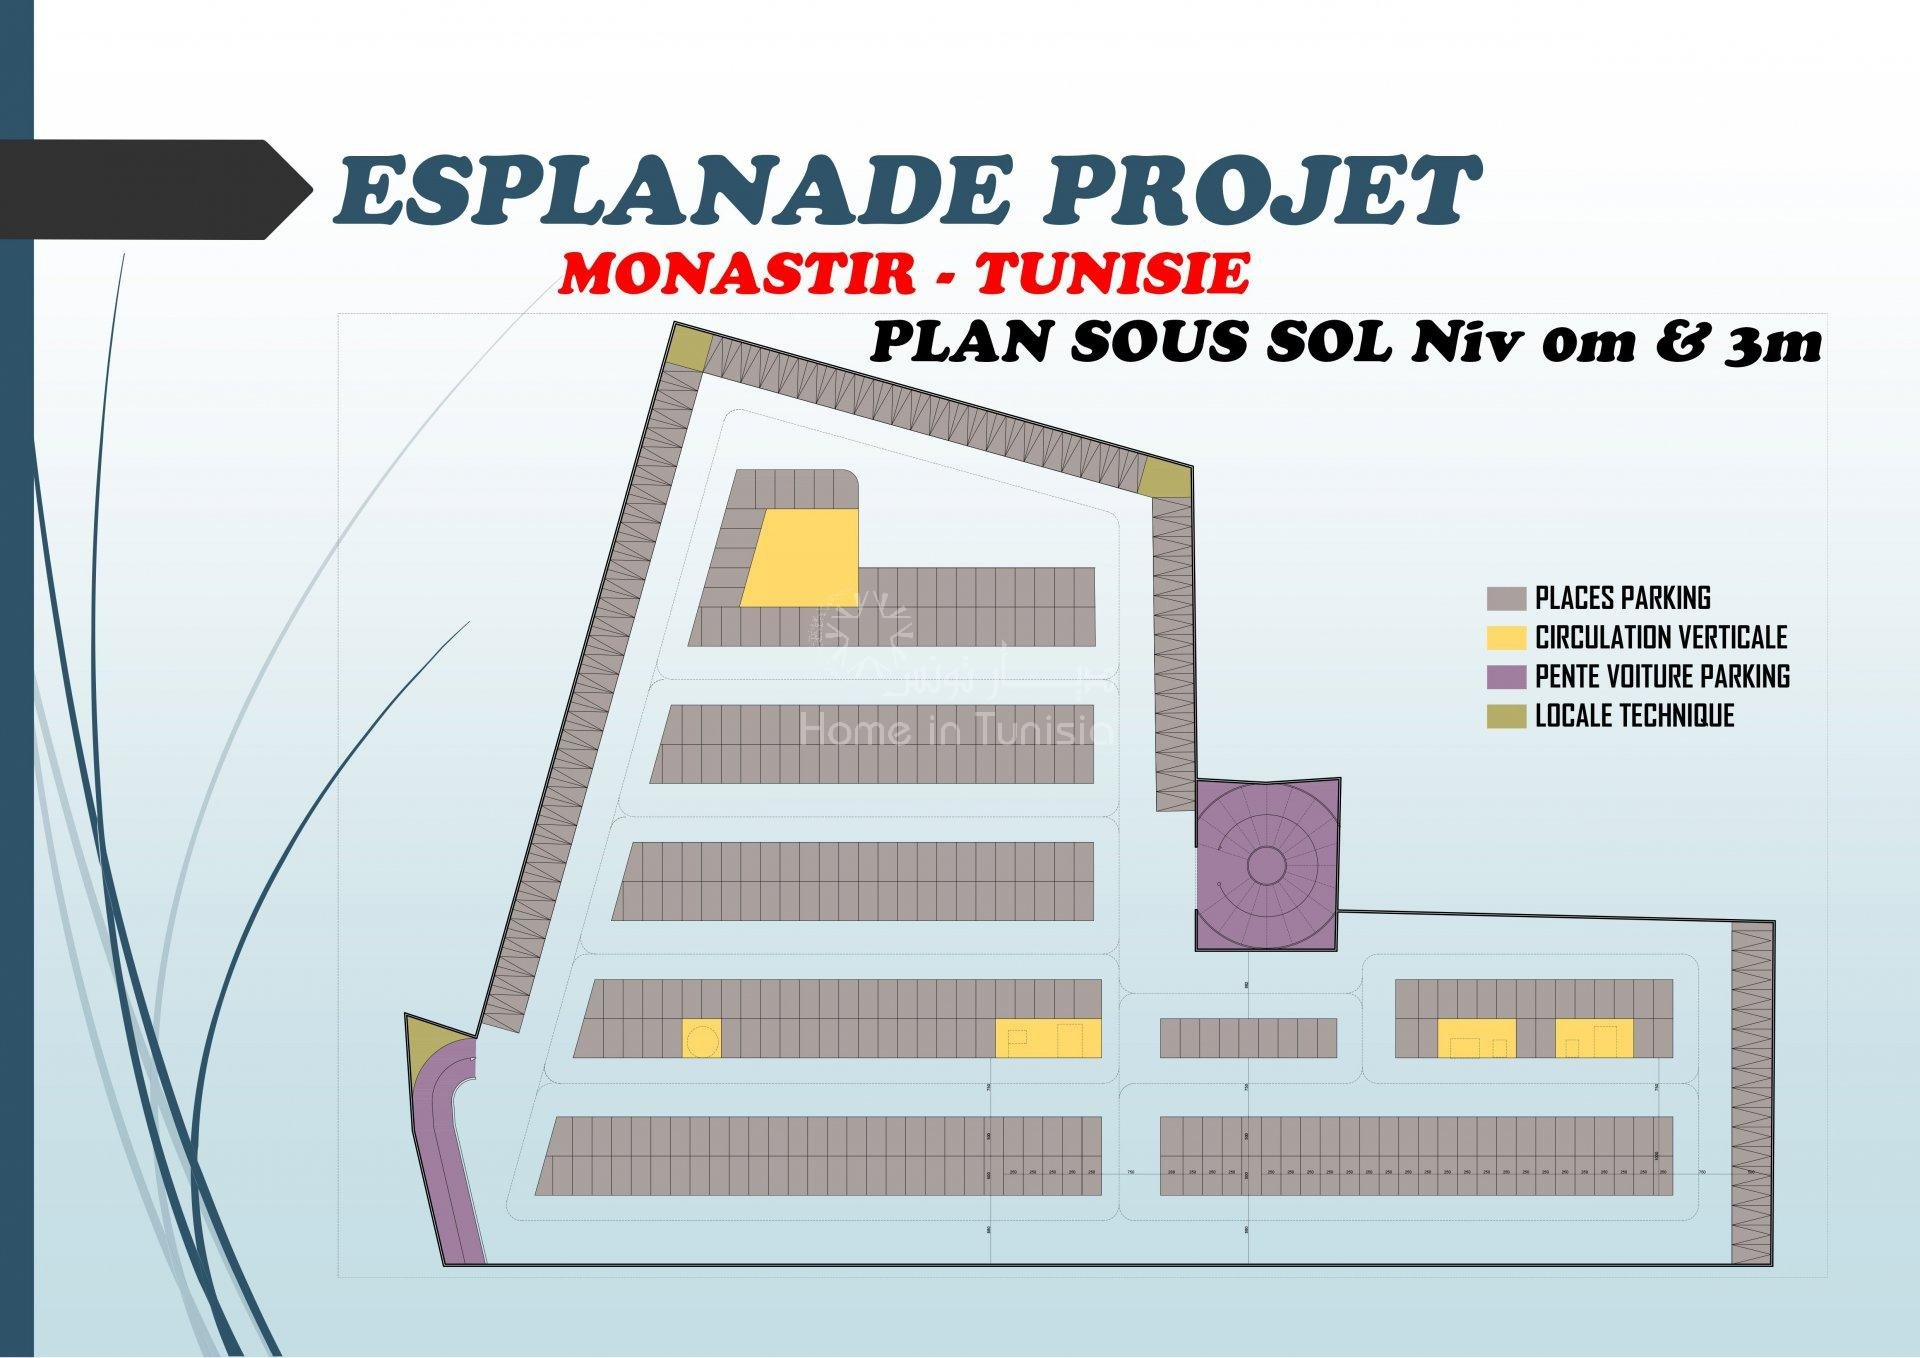 Captivating Building Land   Monastir   Tunisia